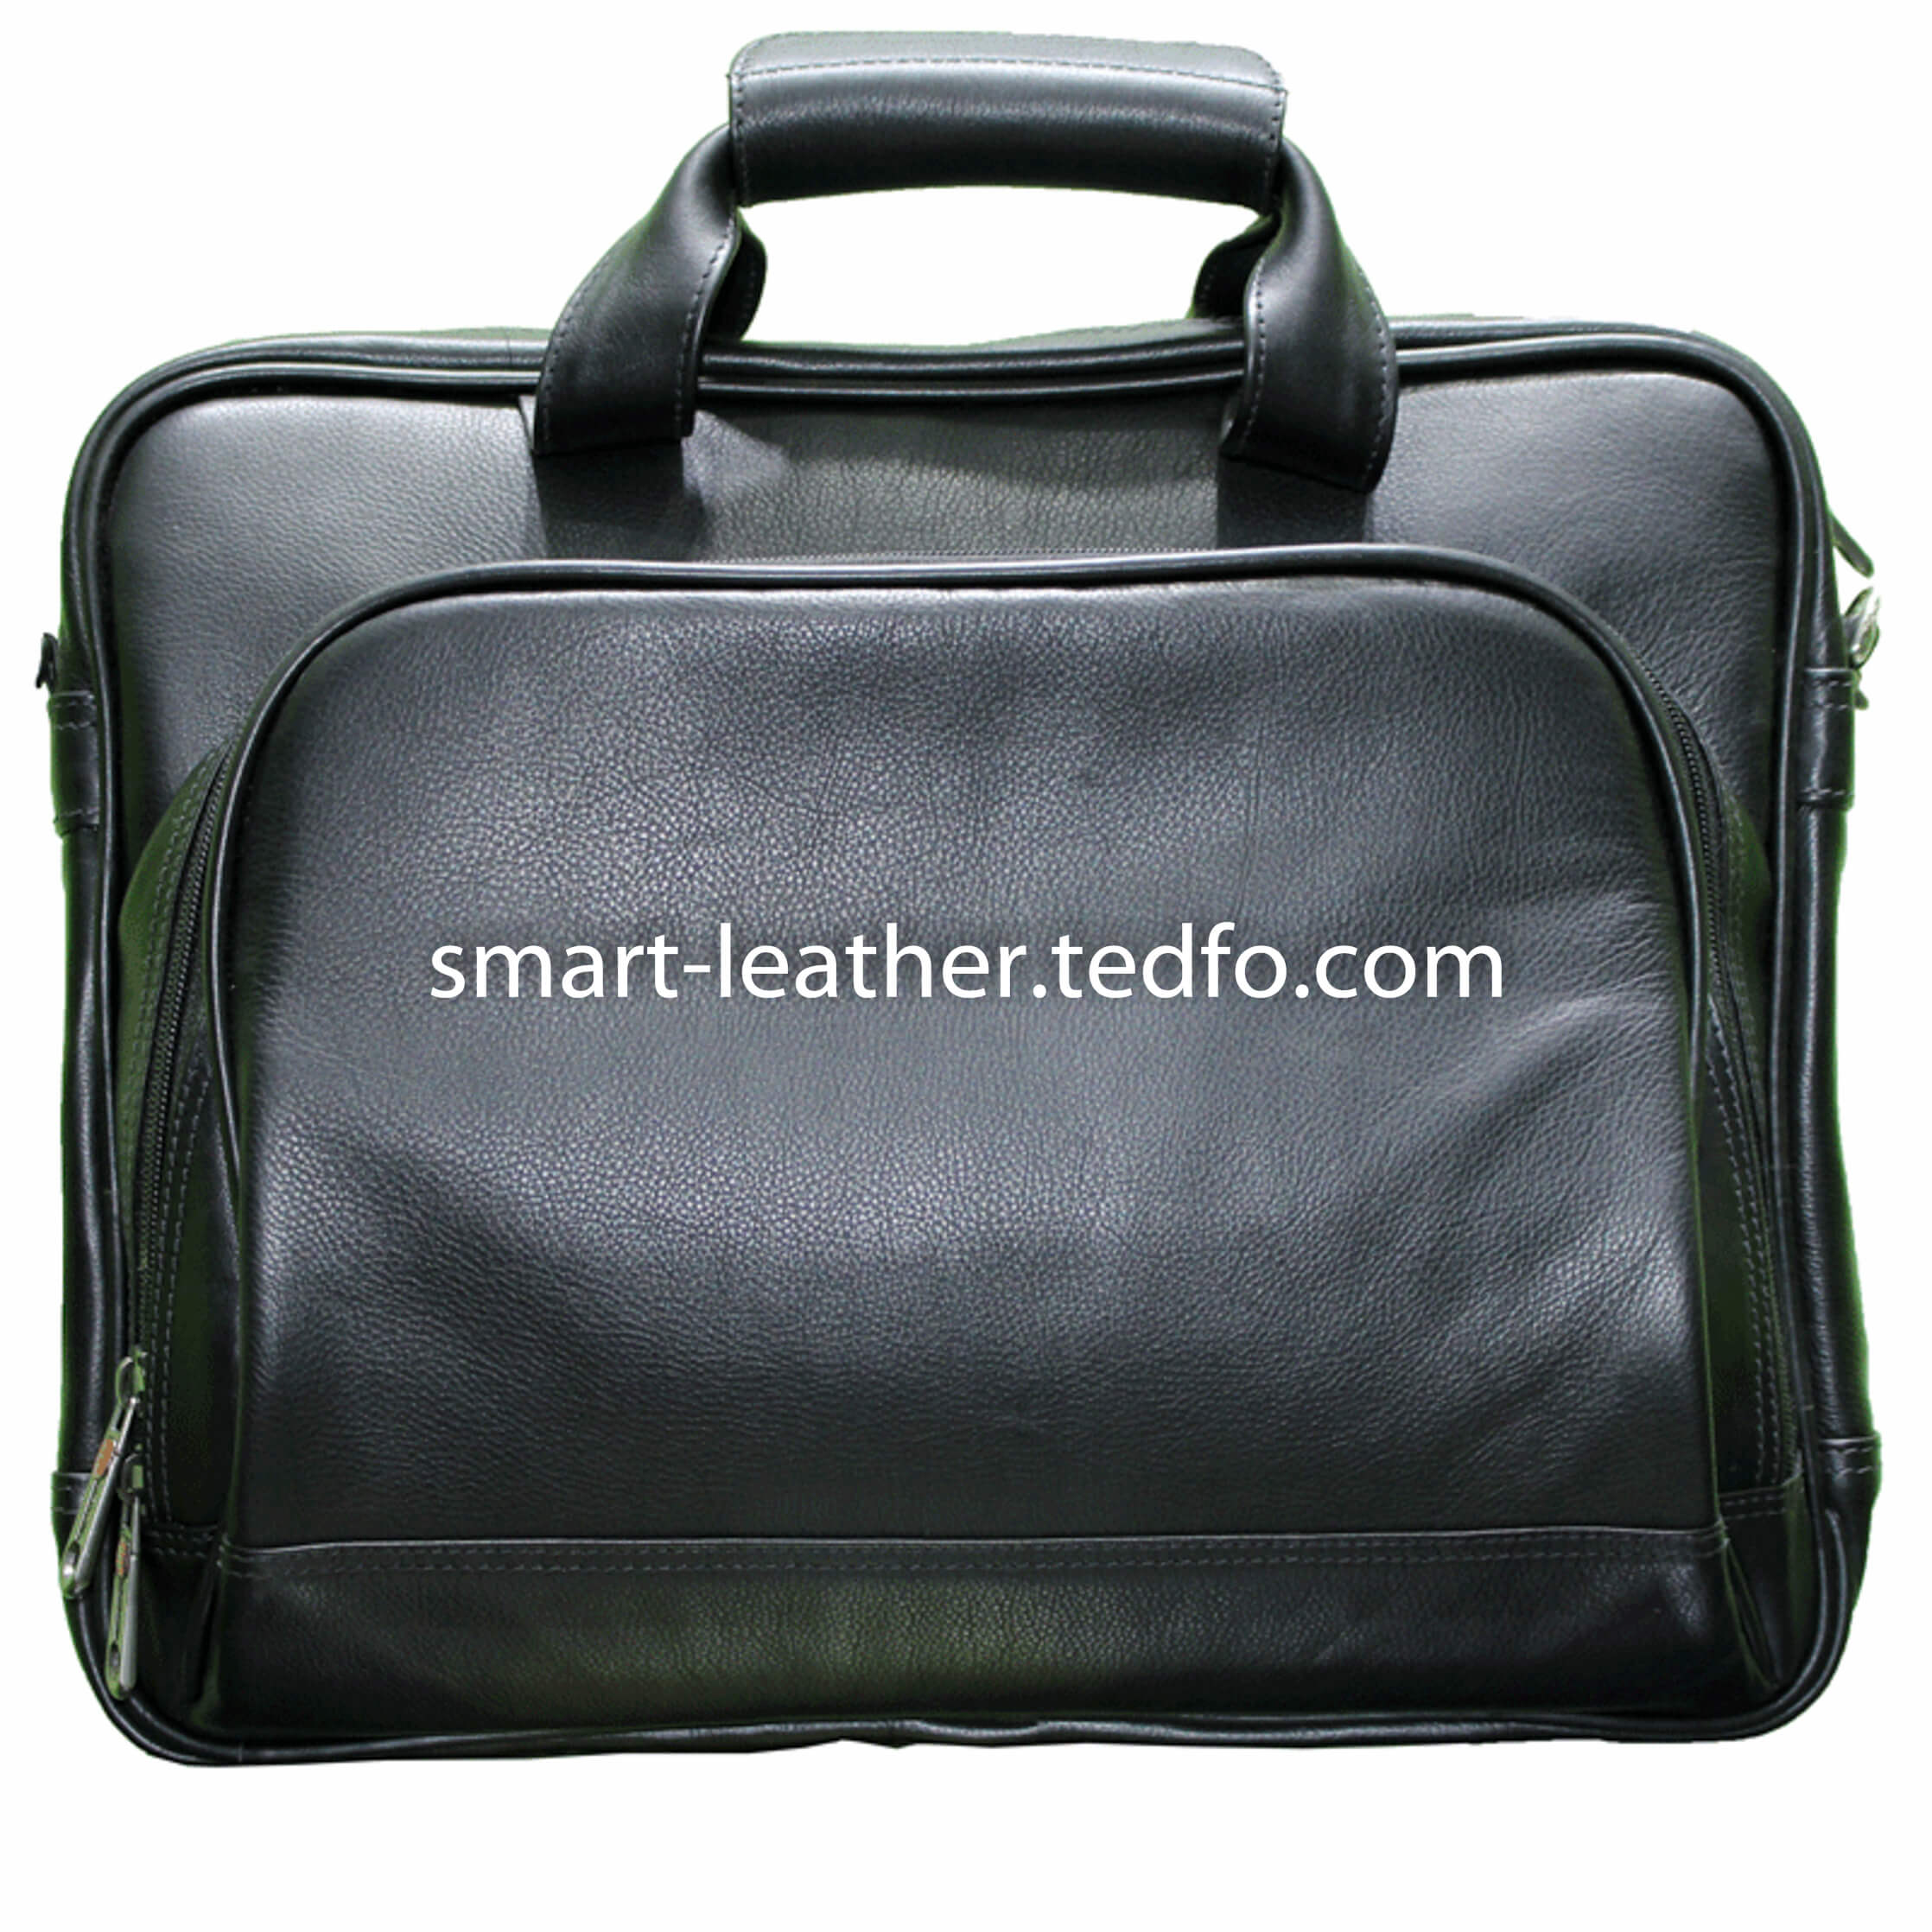 fine quality laptop bag